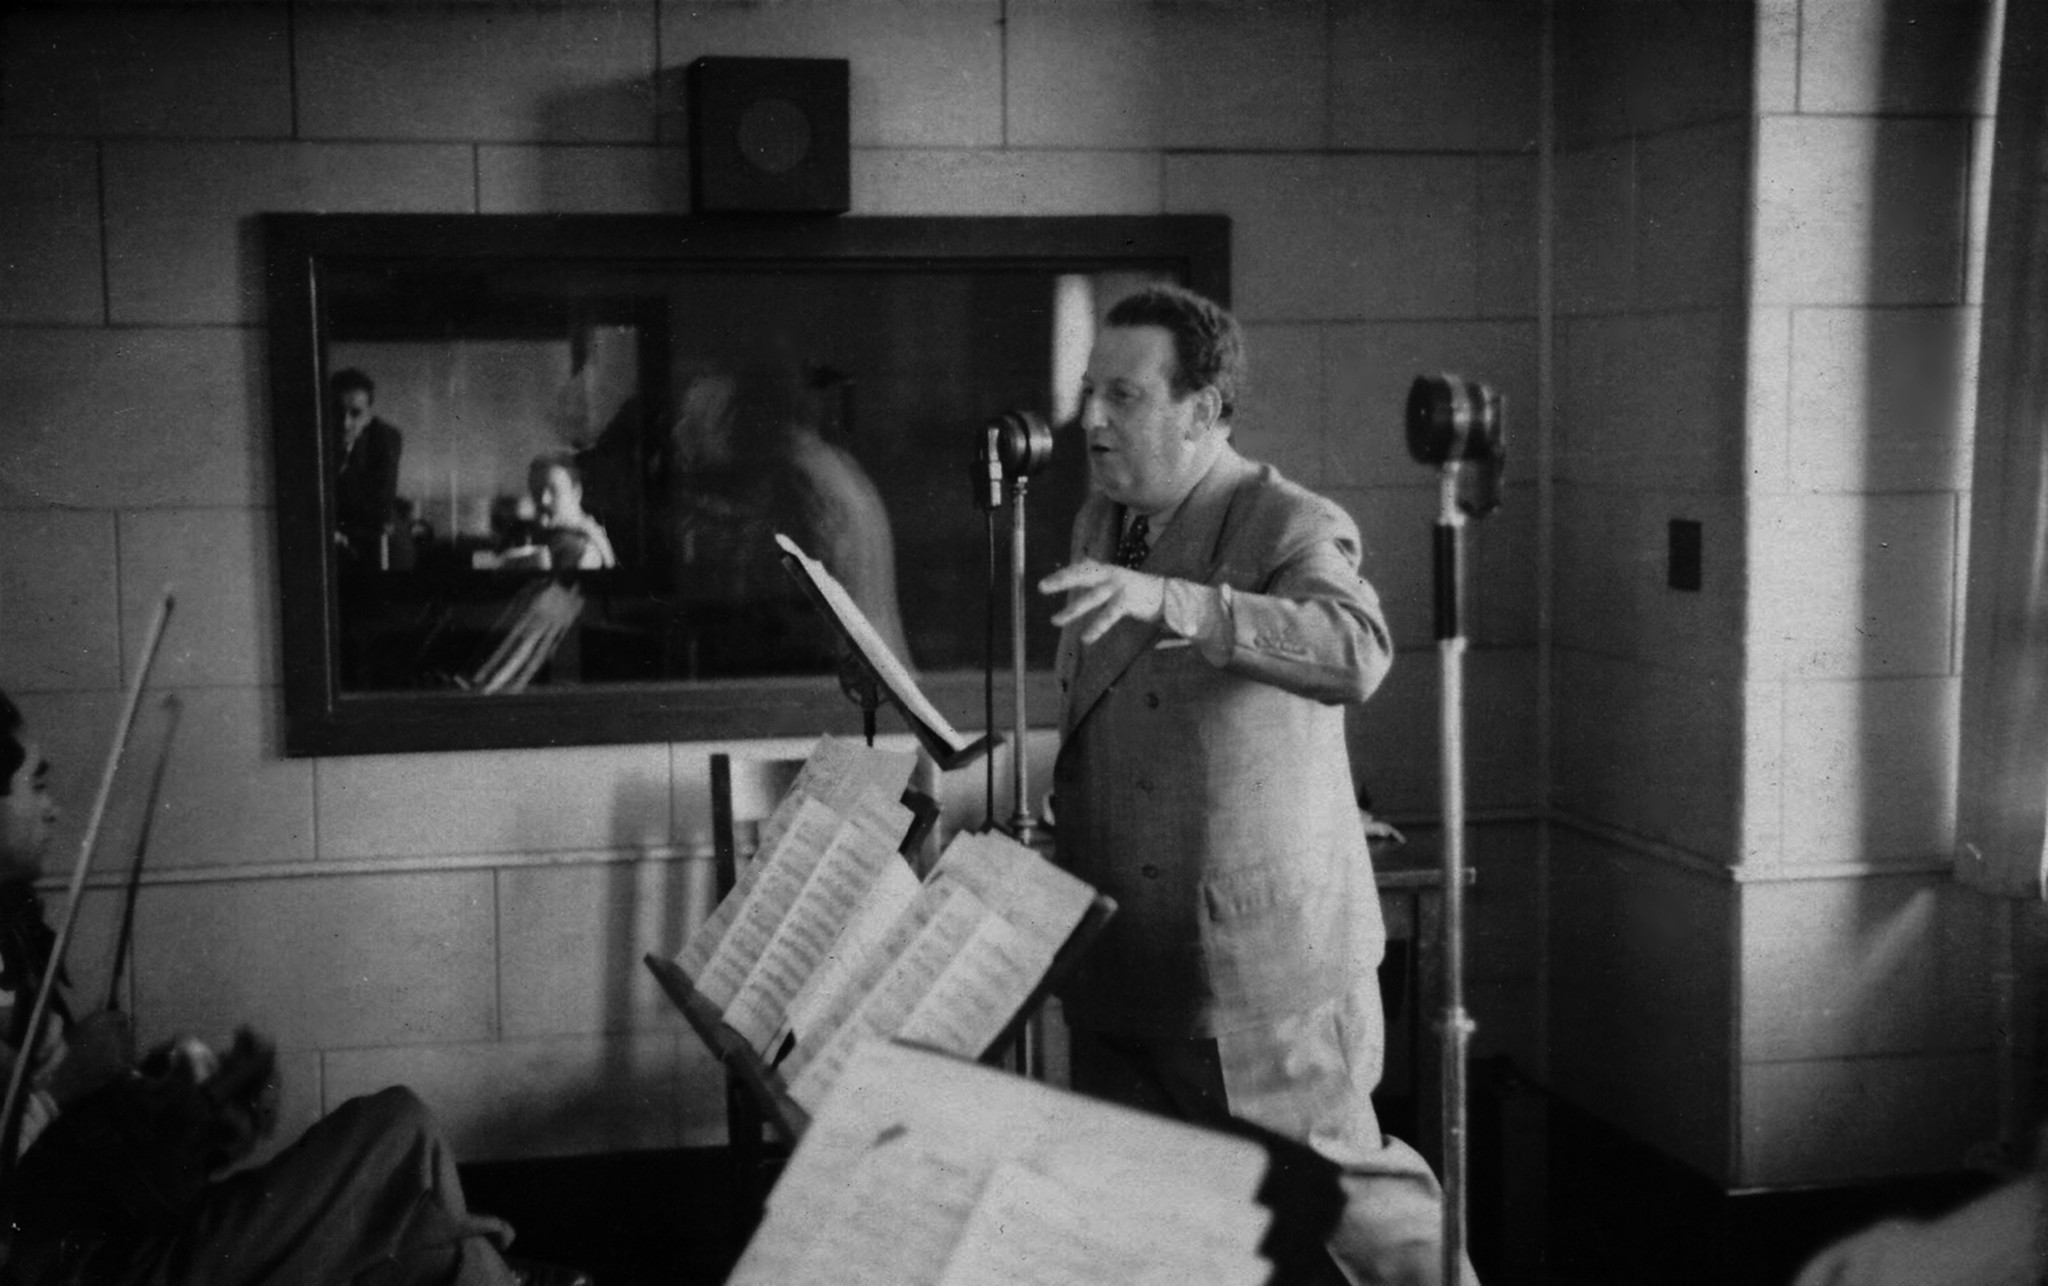 Max Ehrlich during a radio broadcast in New York in 1937. Max Ehrlich was one of the leading stars o